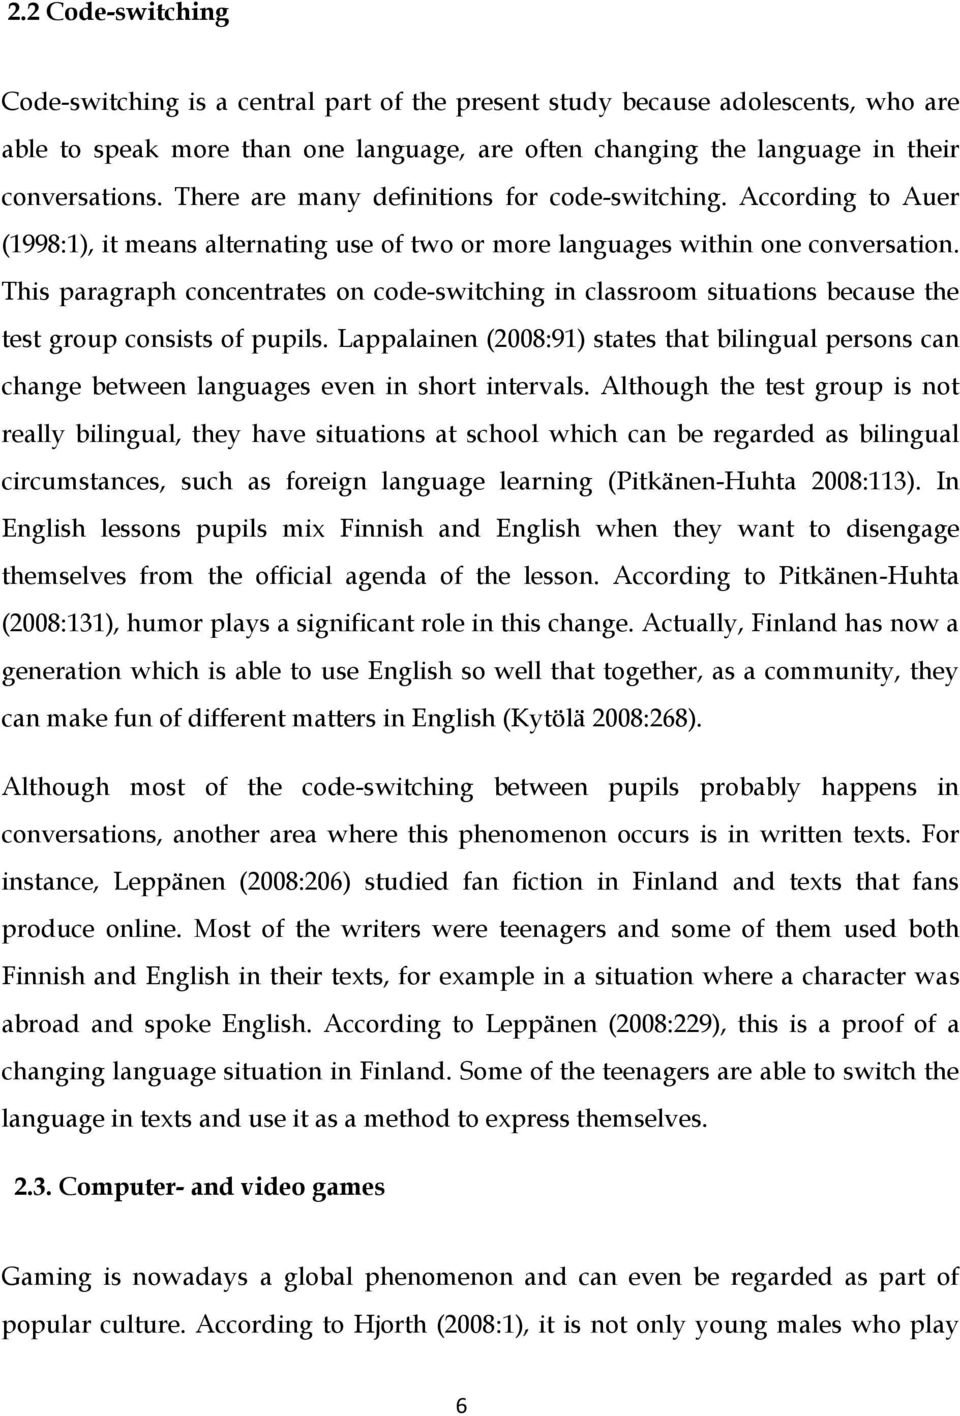 This paragraph concentrates on code-switching in classroom situations because the test group consists of pupils.